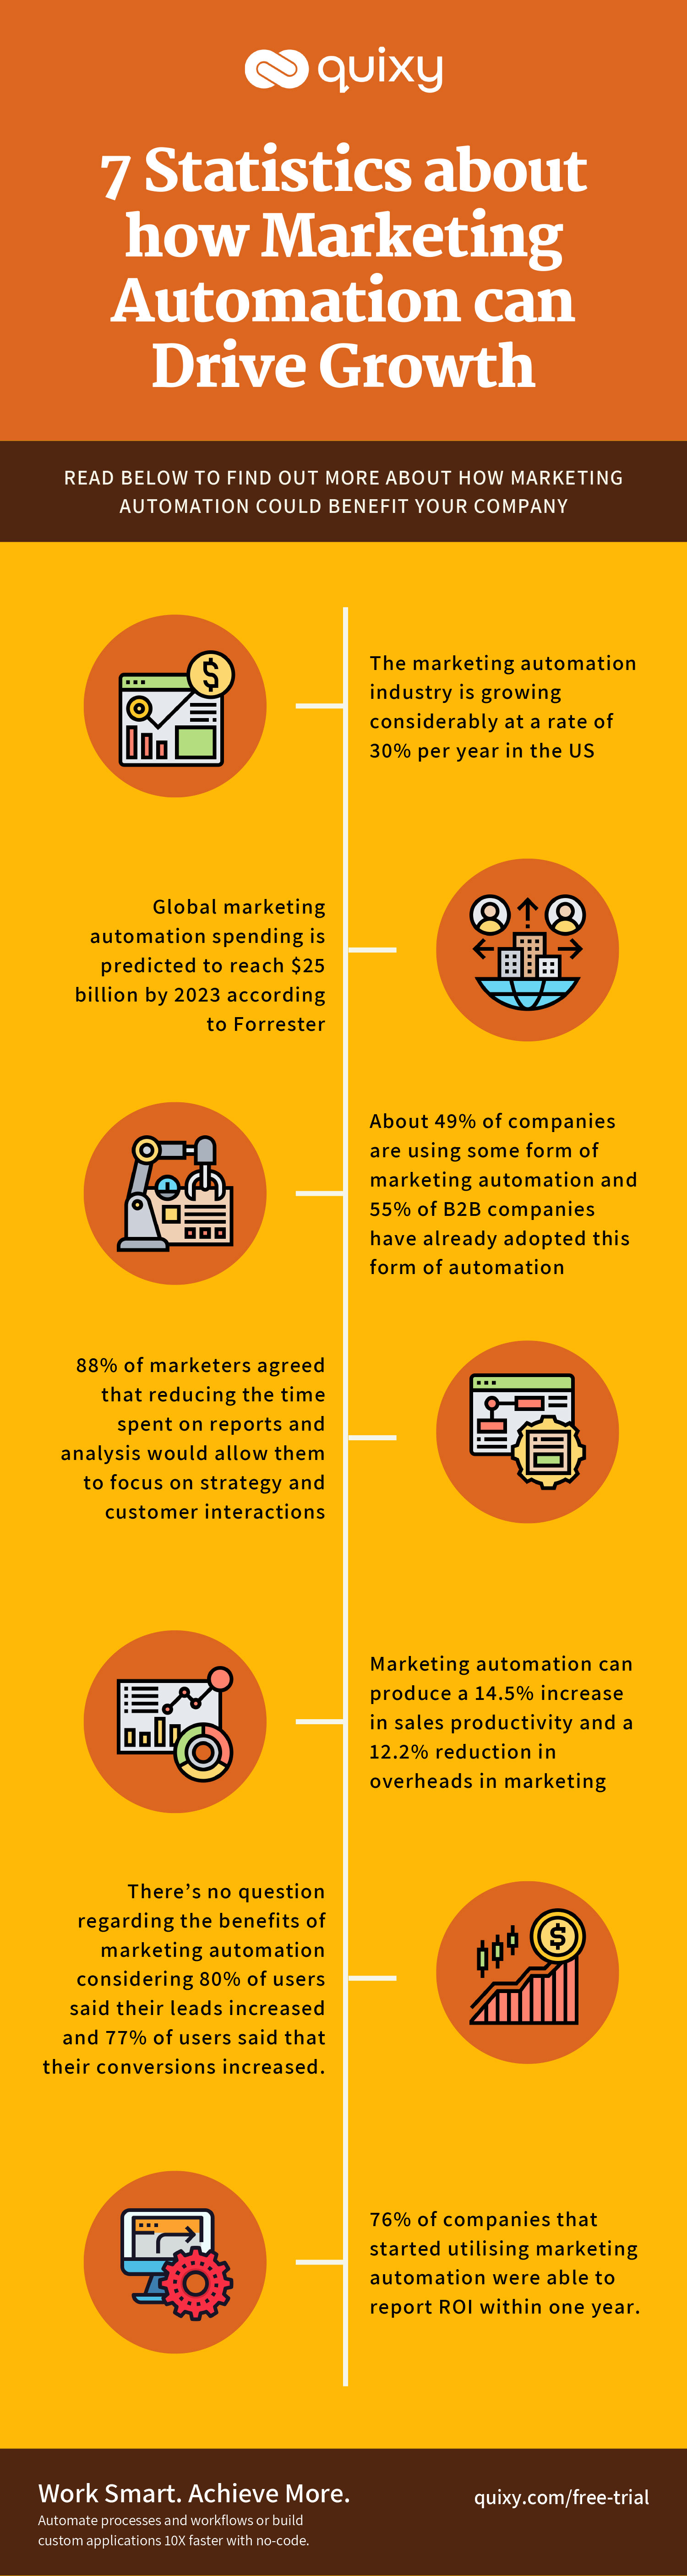 7 Statistics about how Marketing Automation can Drive Growth